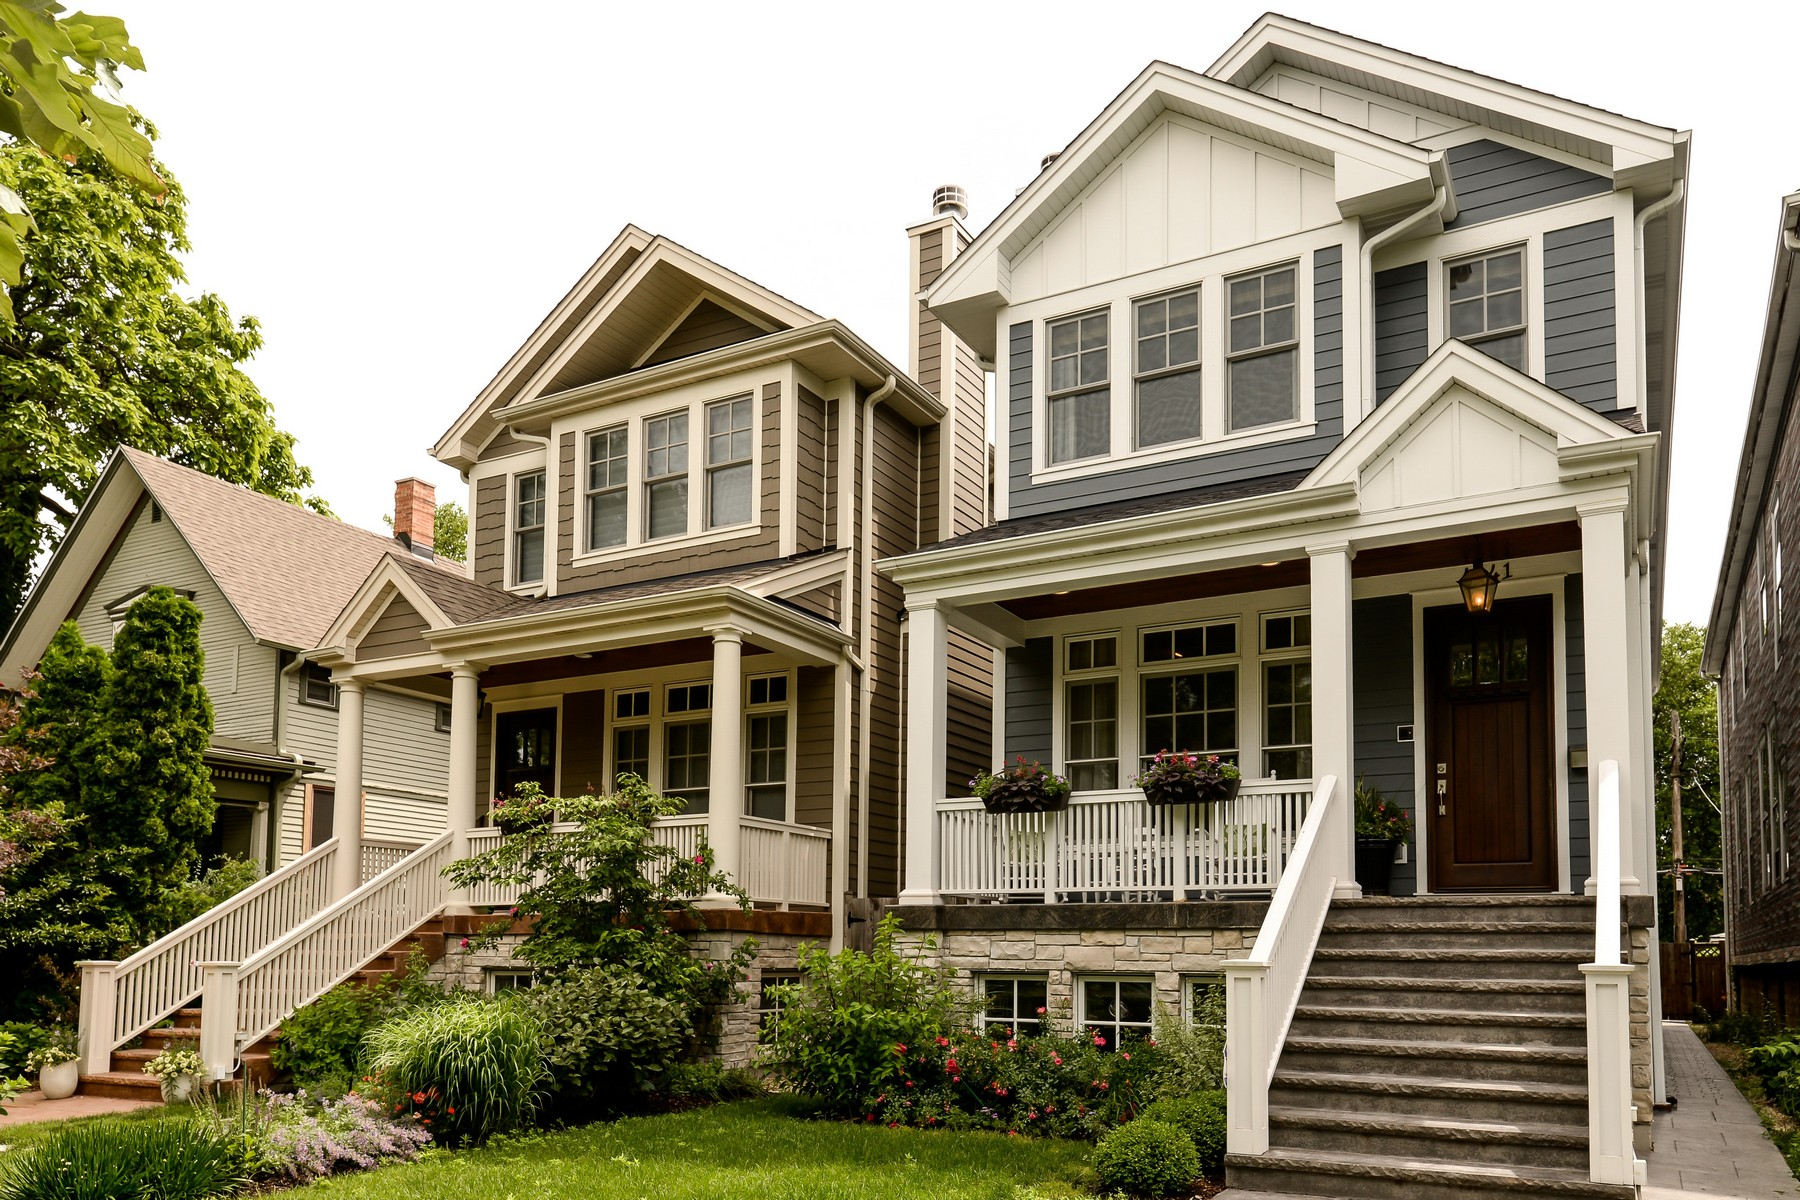 Single Family Home for Sale at Gorgeous Lakeview Home 4241 N Paulina Street, Lakeview, Chicago, Illinois, 60613 United States